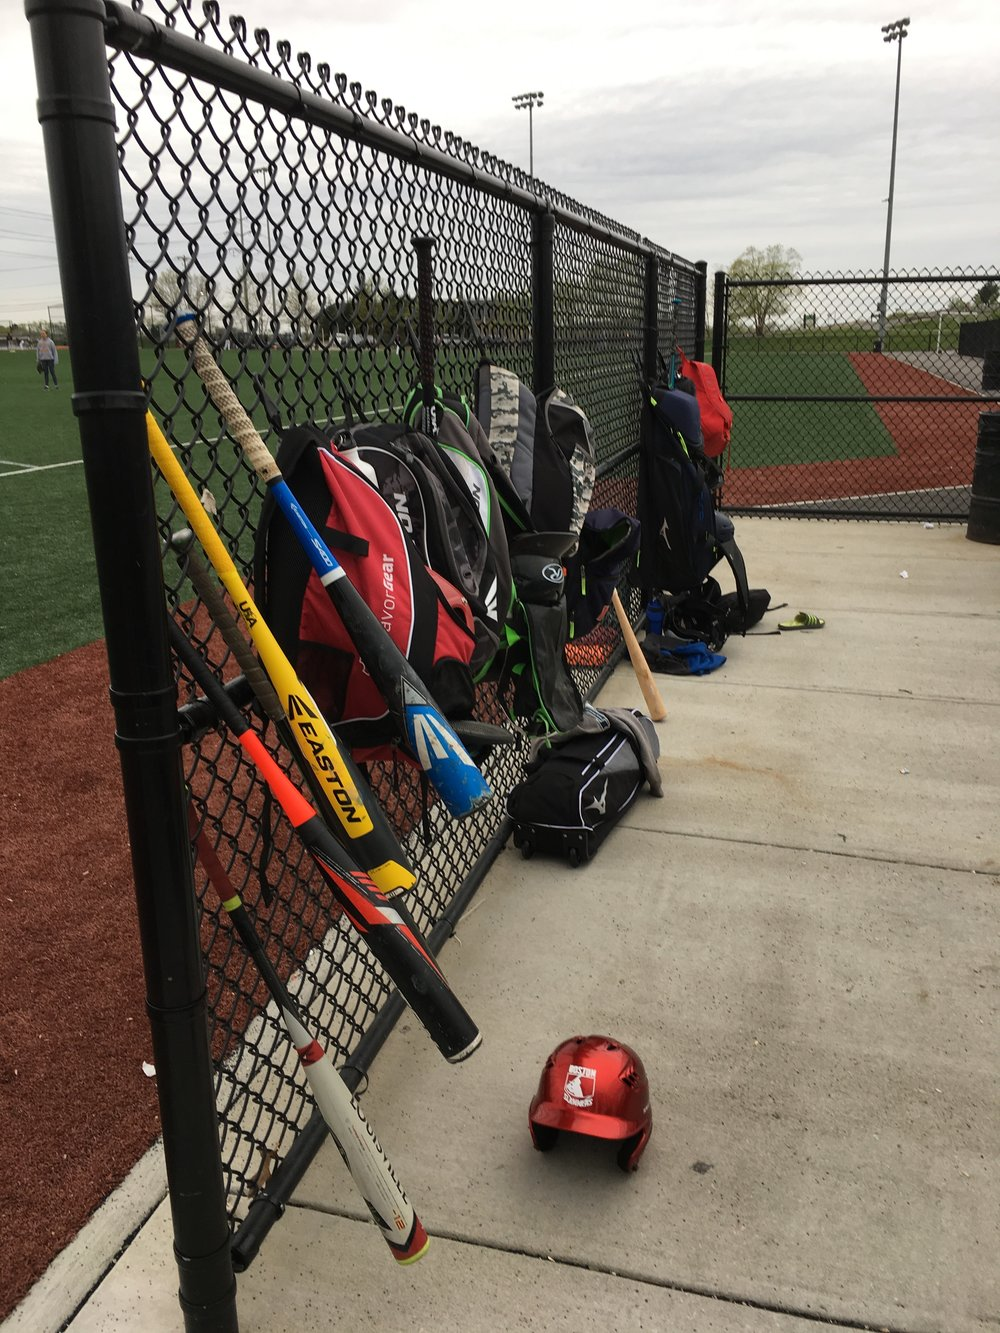 The girls' bats, backpacks and batting helmet.